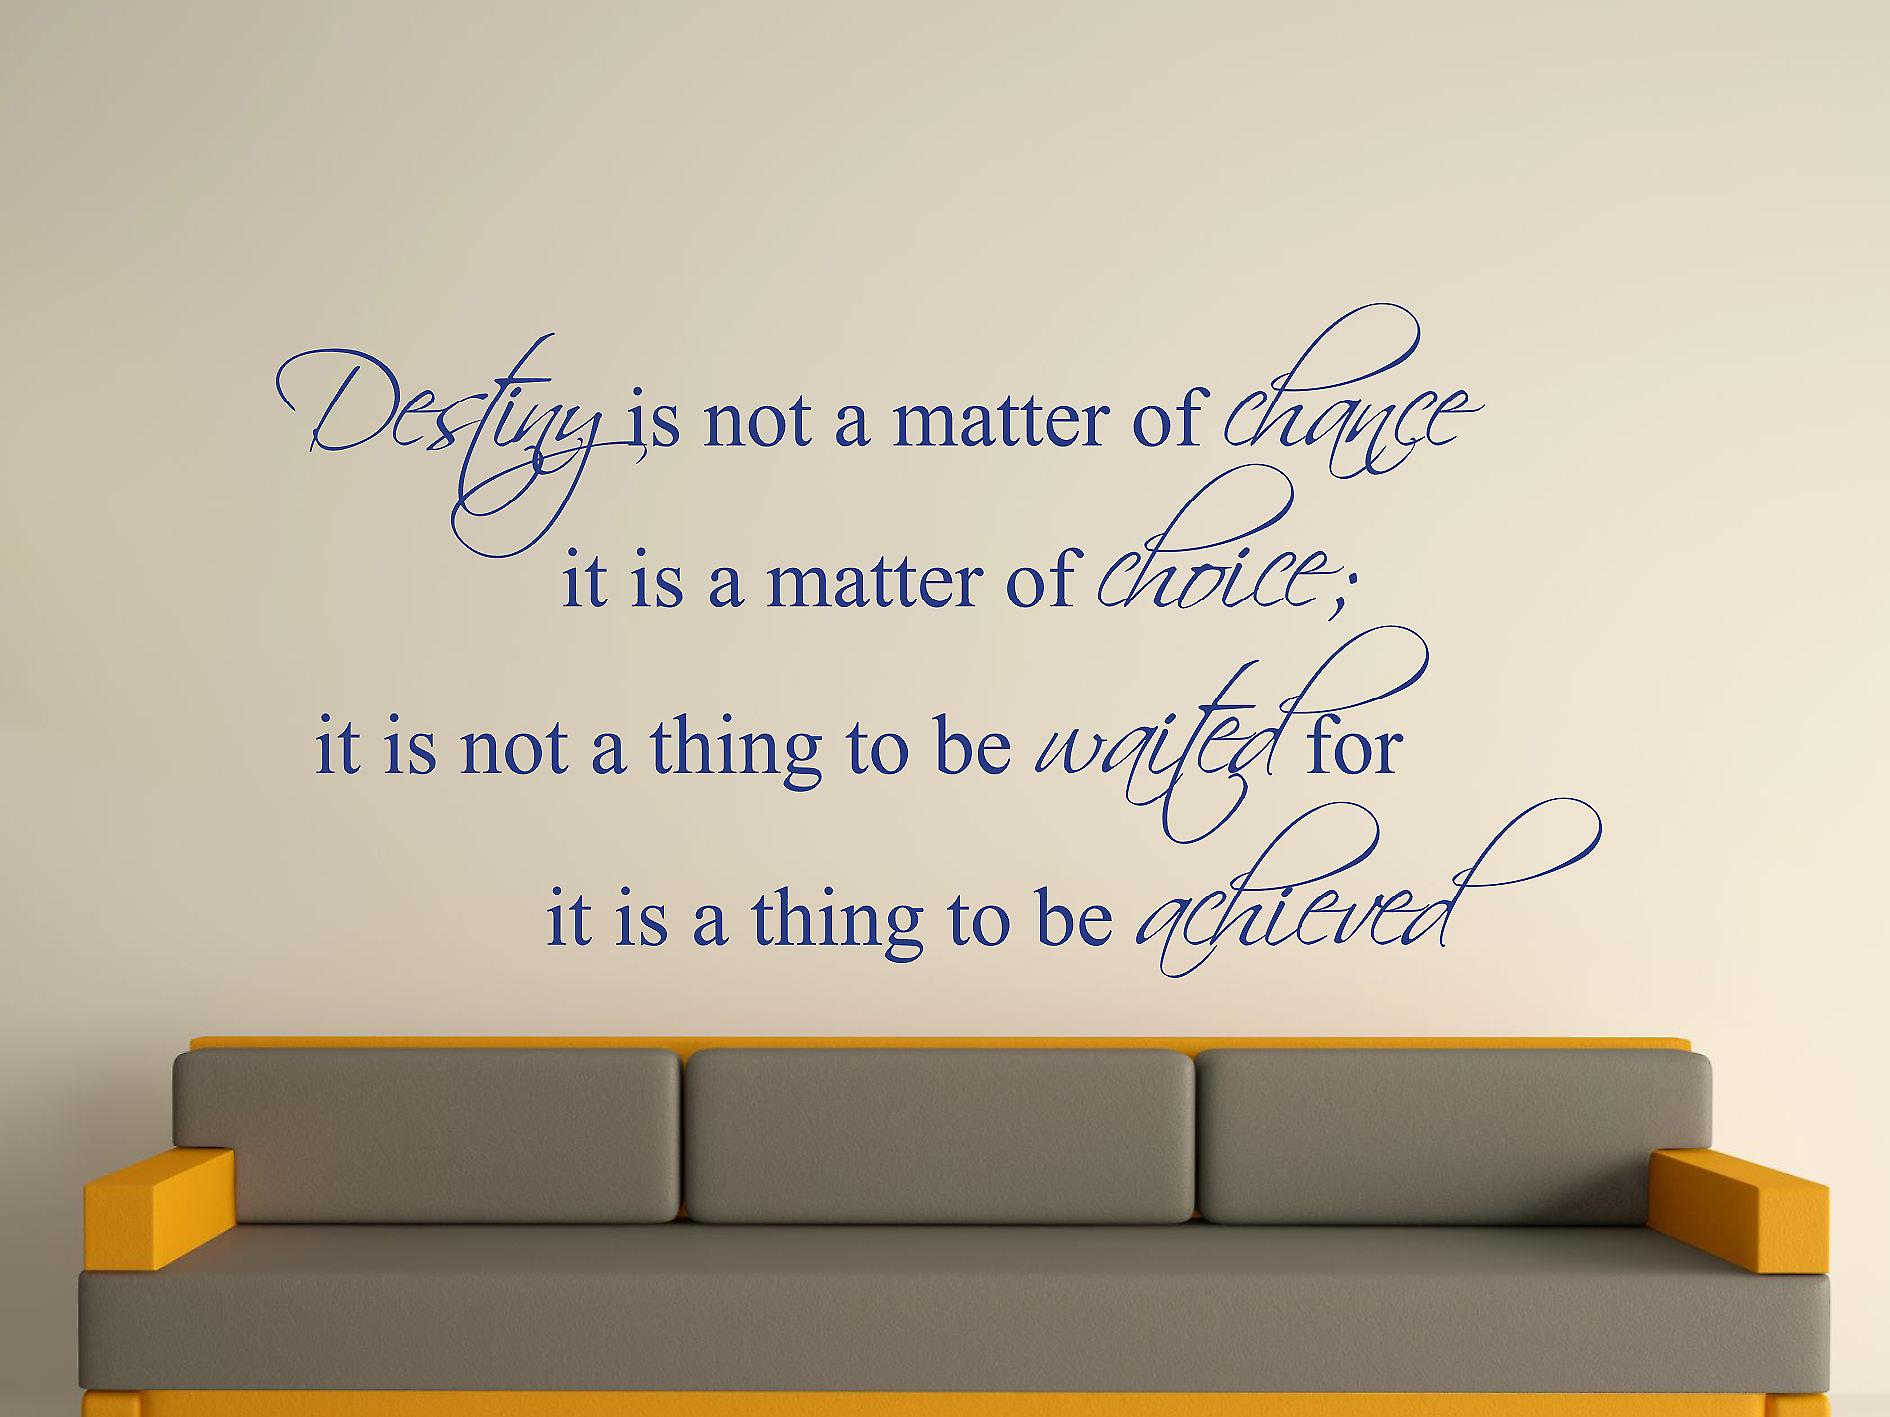 Destiny Is Not A Matter of Chance Wall Art Sticker - Azure